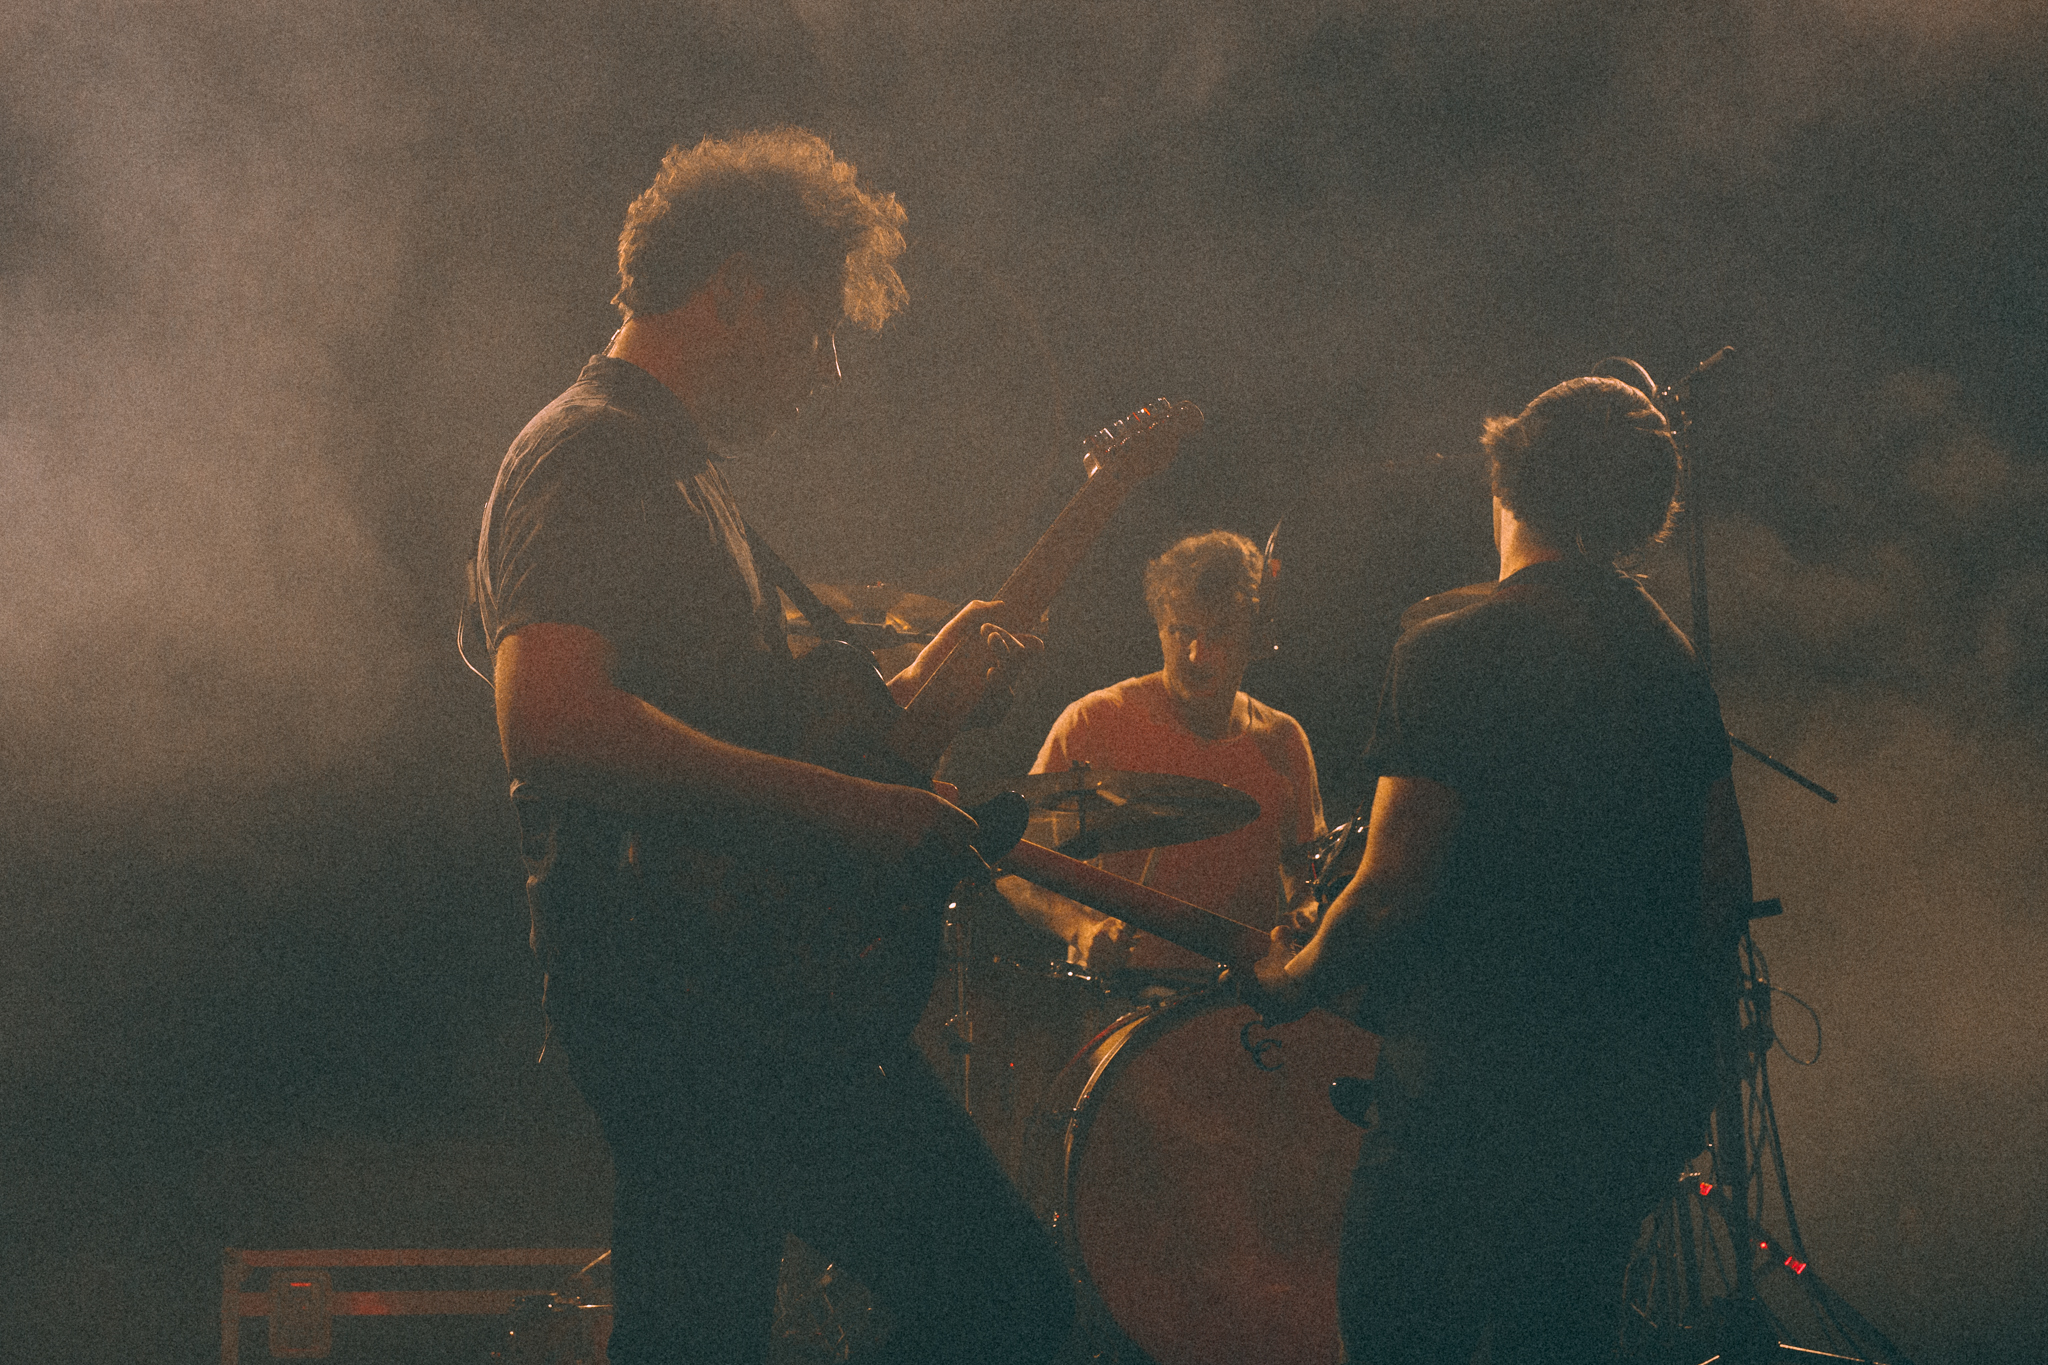 Mitch Lowe Photo - The Wombats - Riverstage-133.jpg